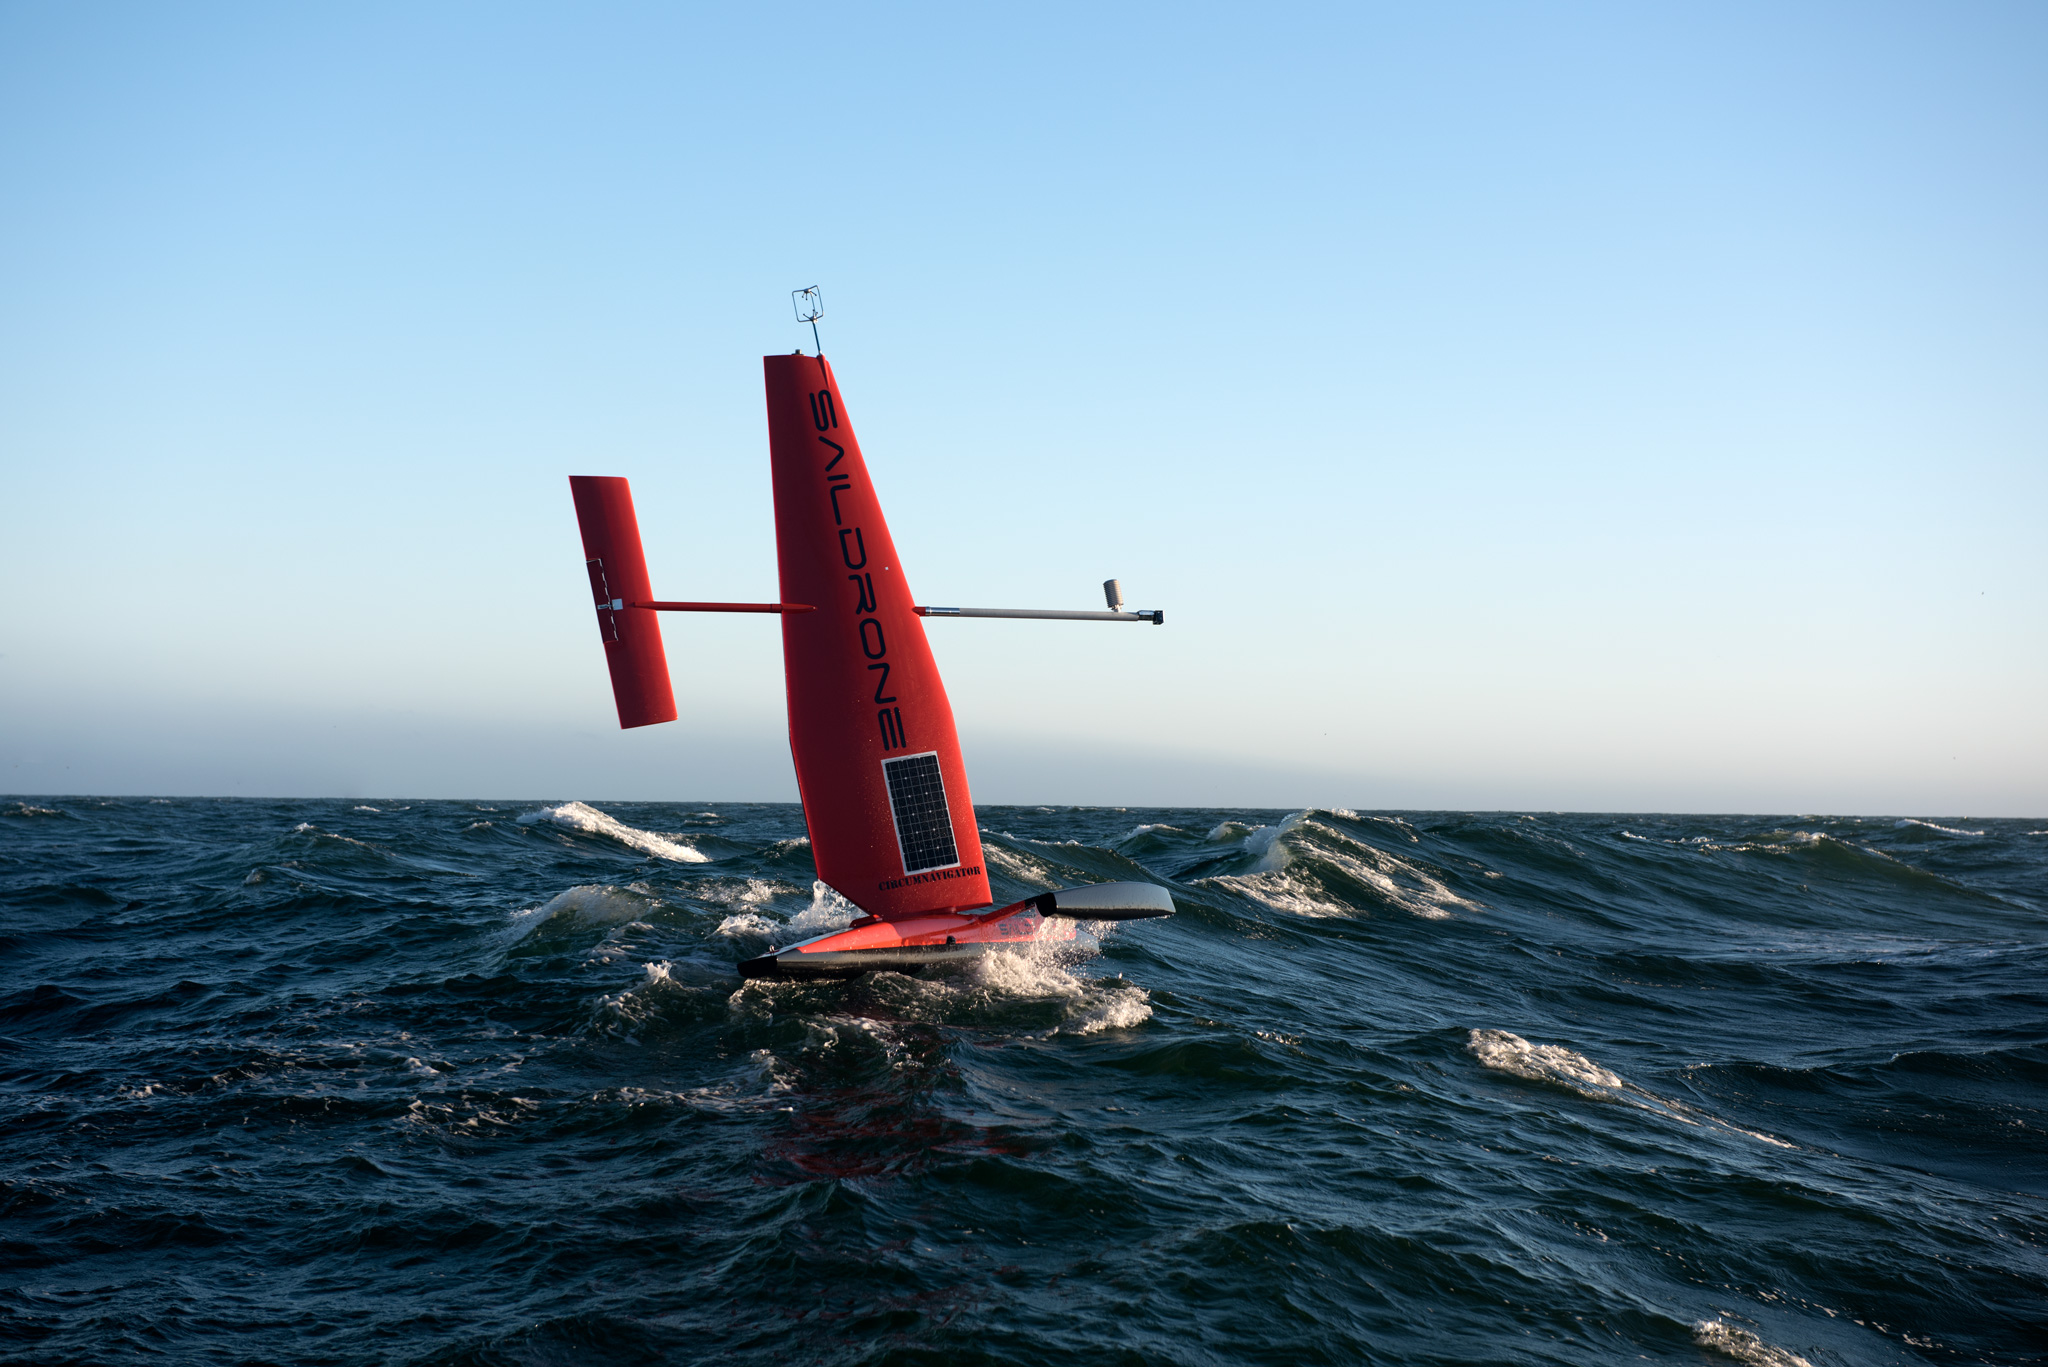 Photo of salidrone sailing on ocean